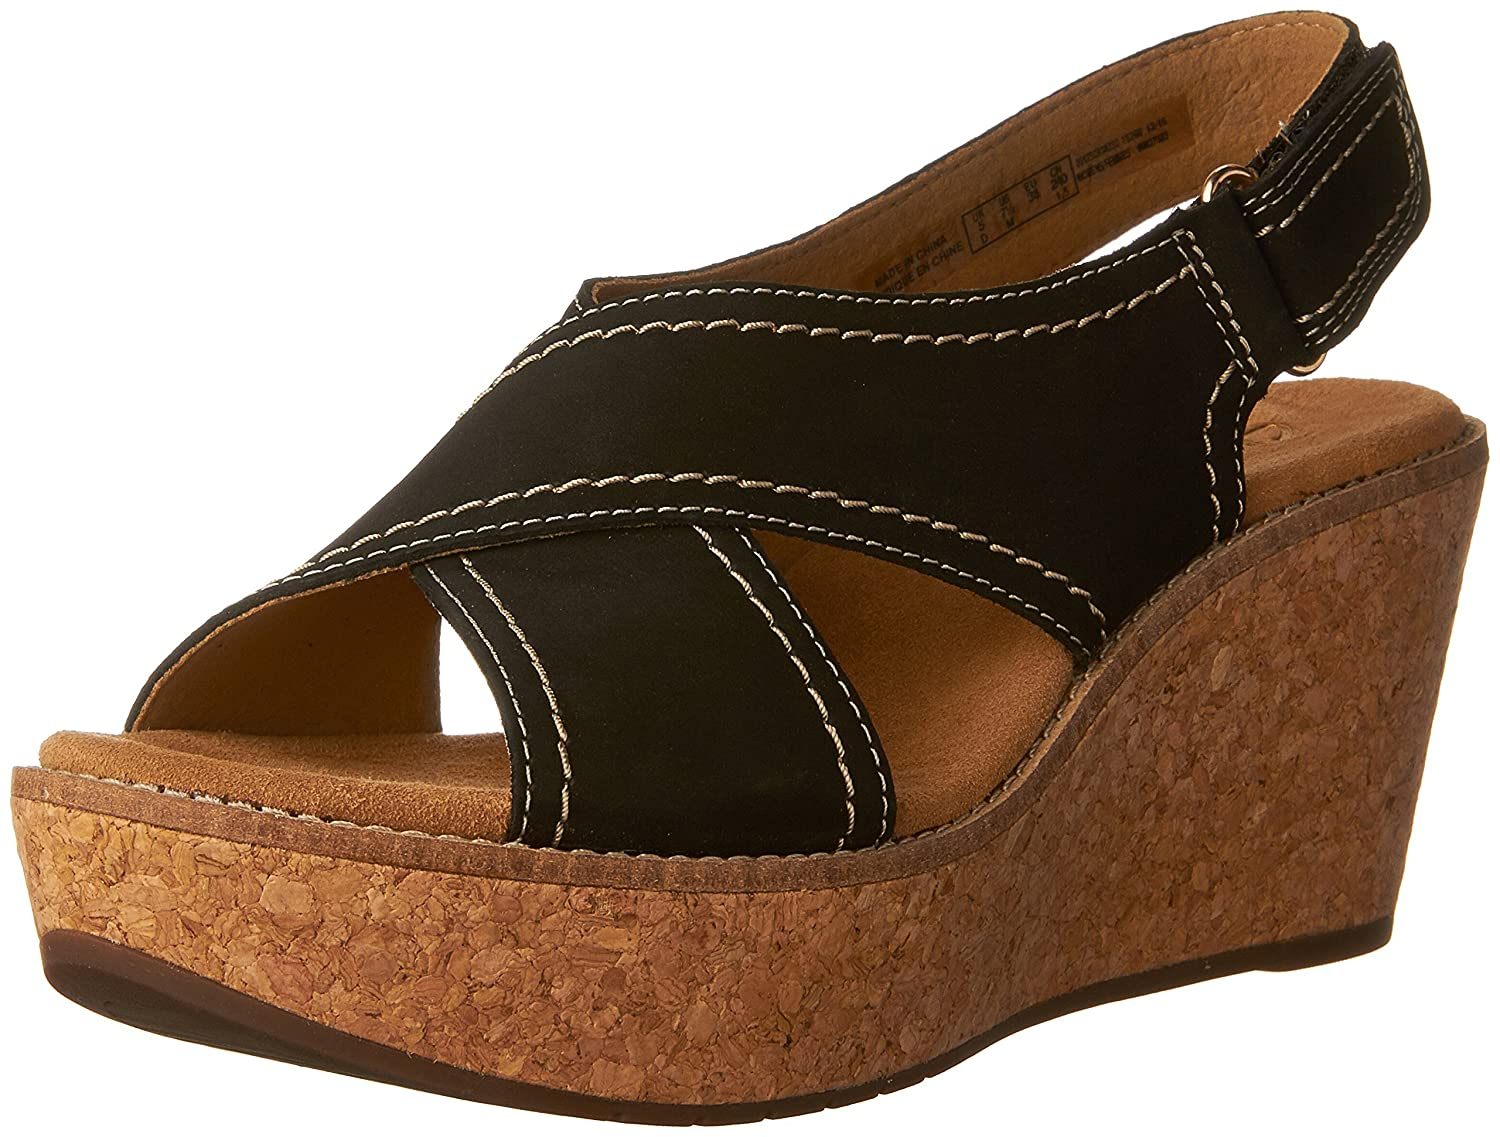 0200115378fd Clarks Women s Annadel Eirwyn Wedges  Amazon.ca  Shoes   Handbags